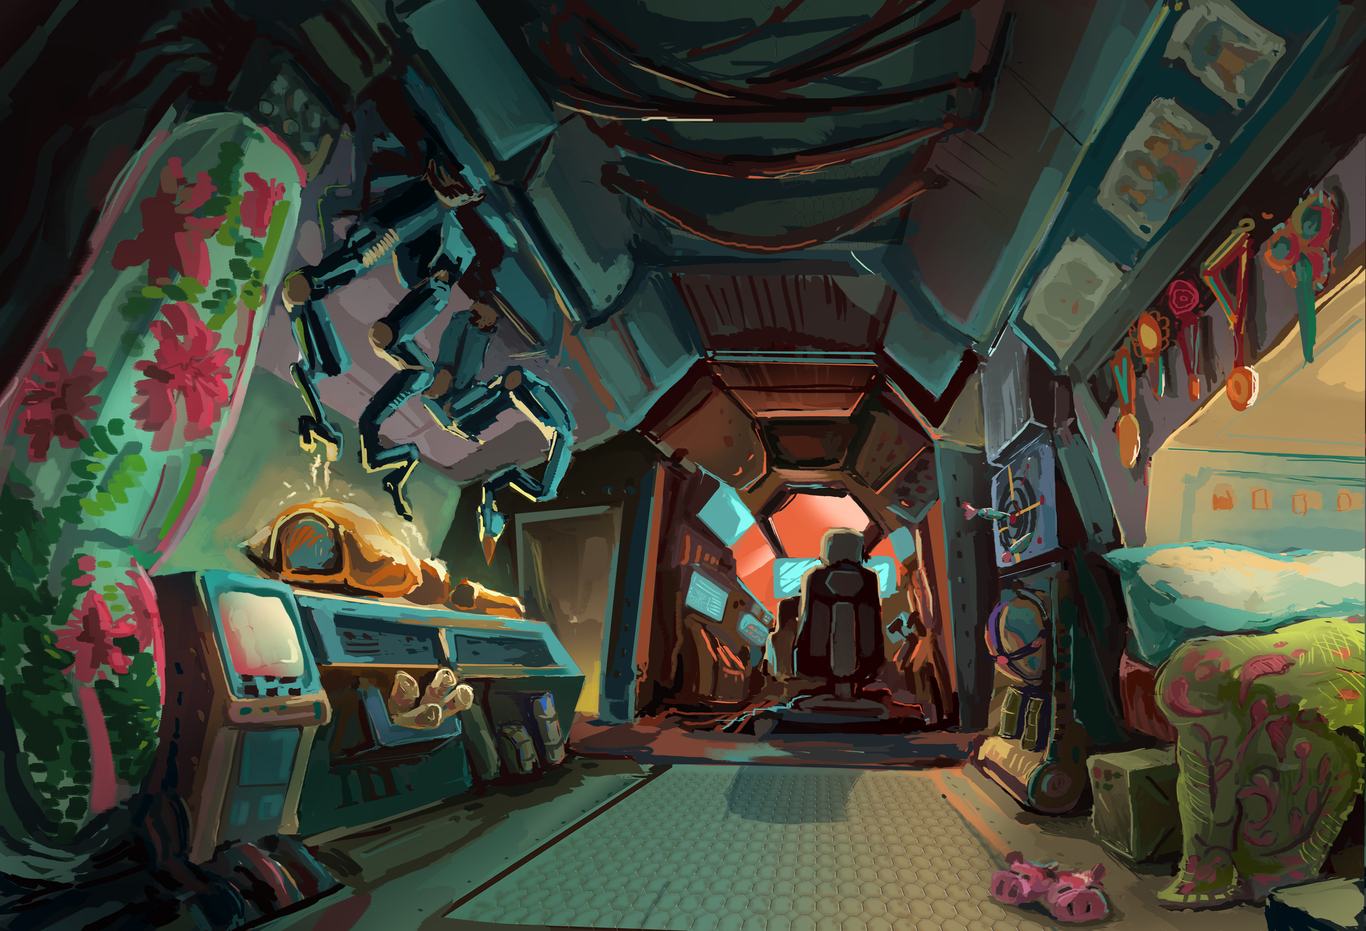 the interior of a spaceship